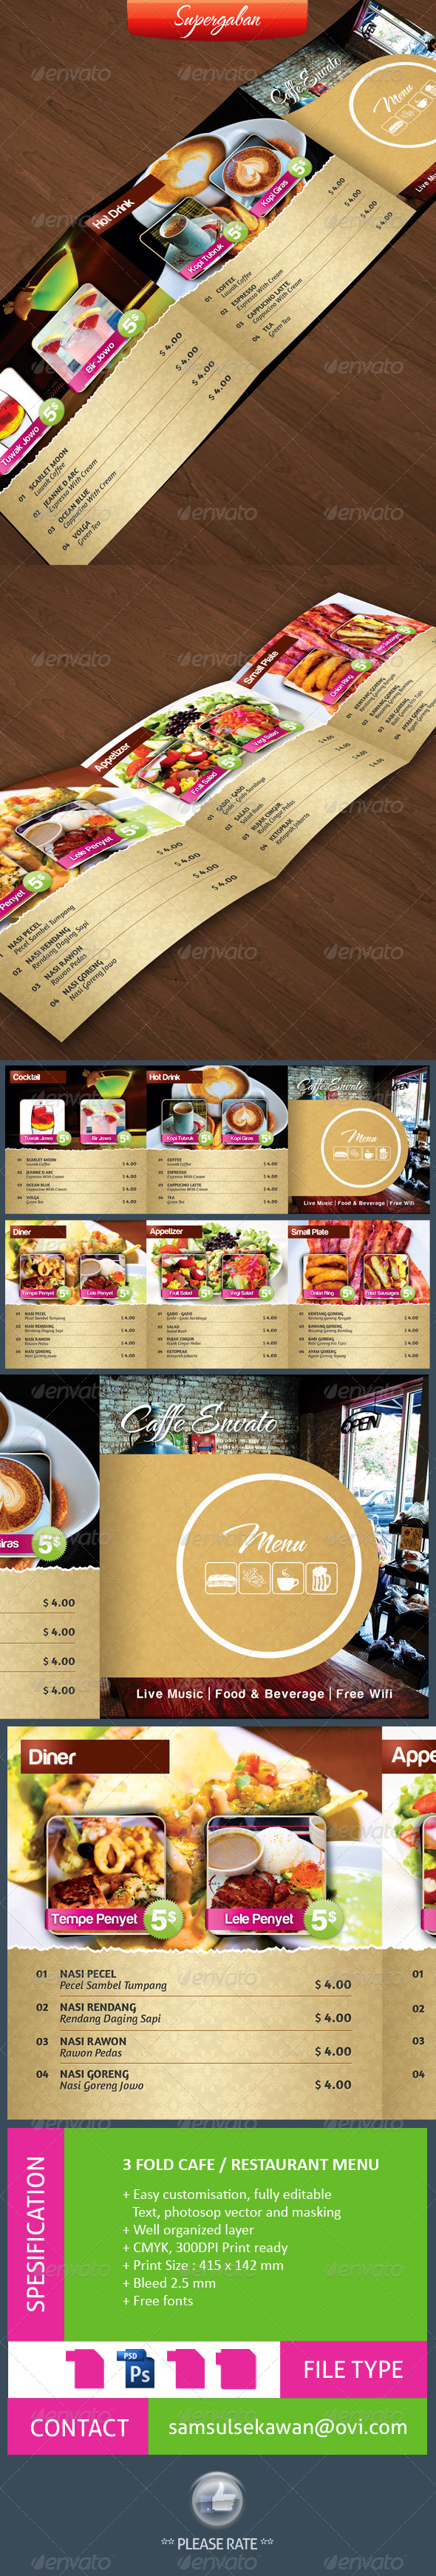 GraphicRiver 3 Fold Square Cafe Restaurant Menu 4308749